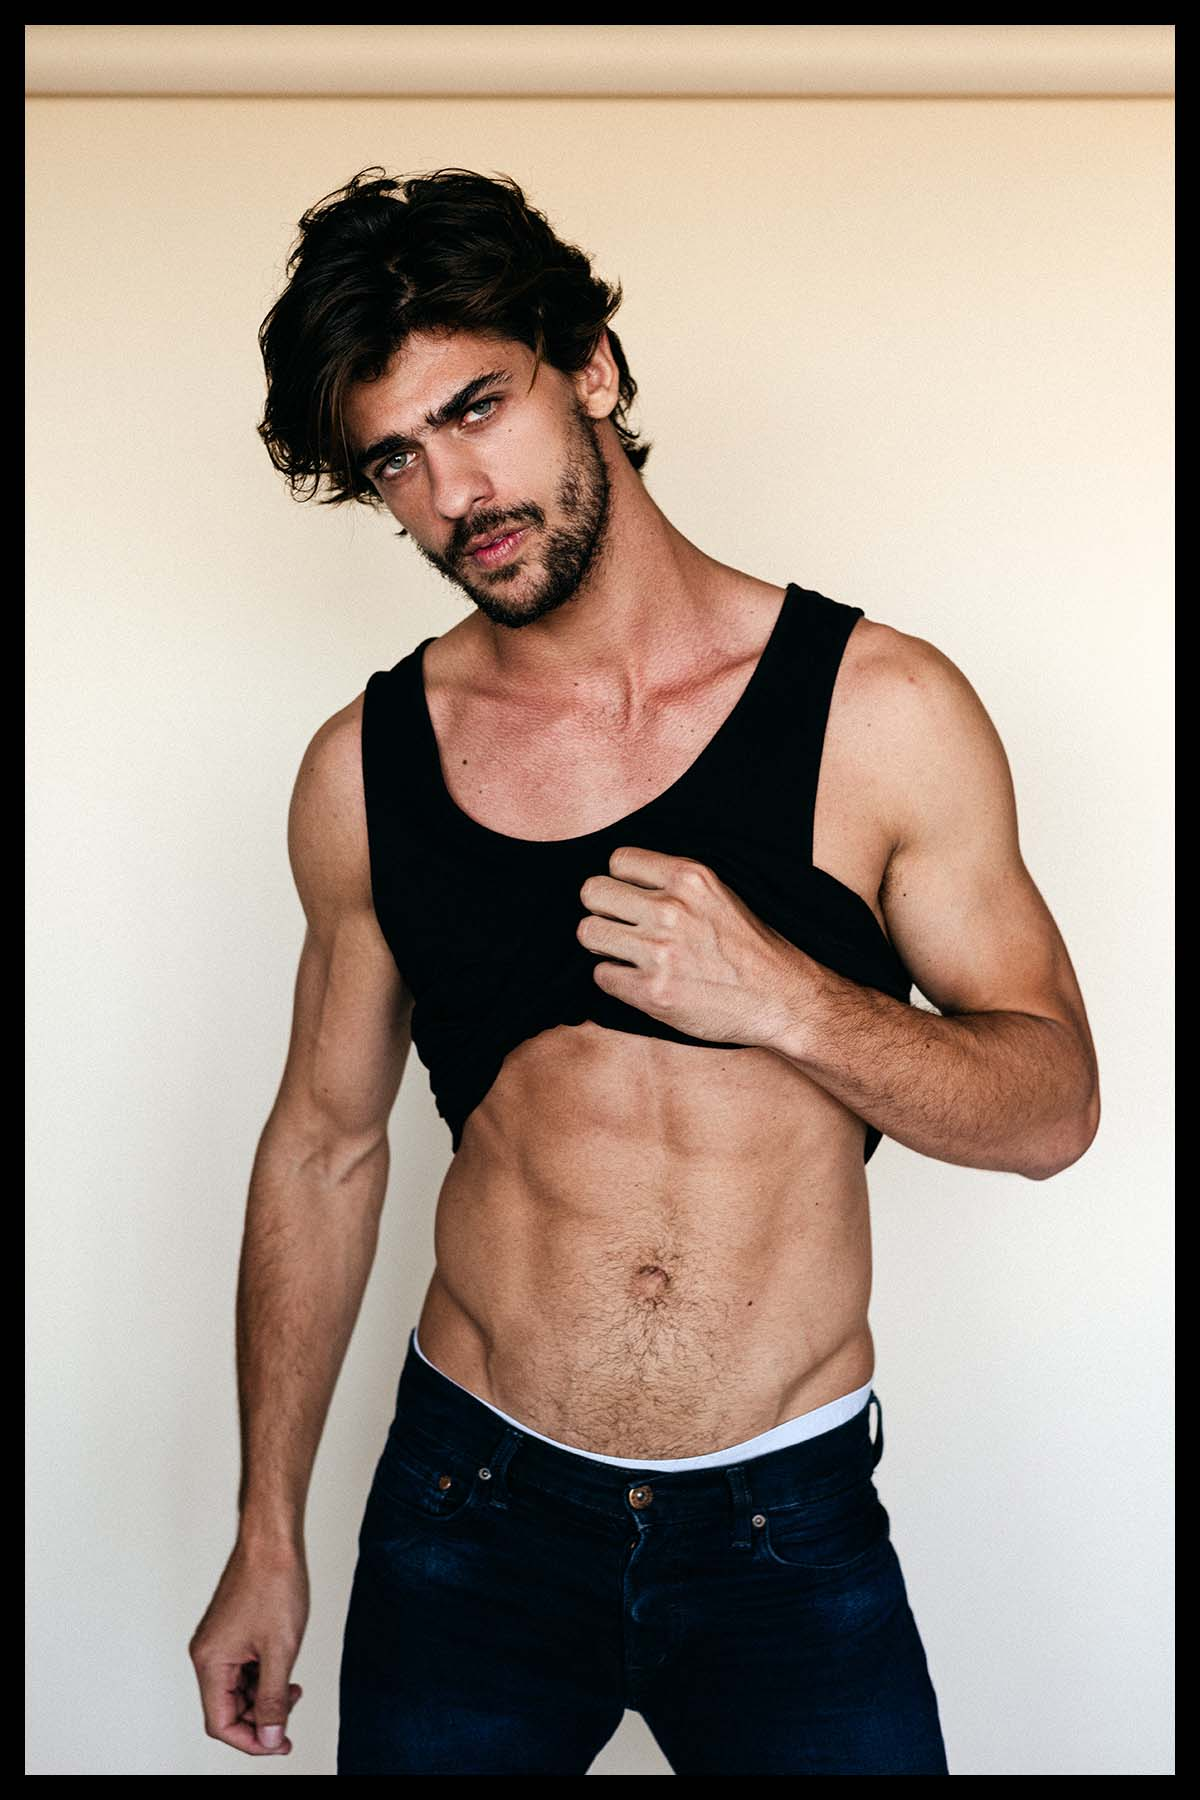 Luan Fernandes by Fidel Chung for Brazilian Male Model